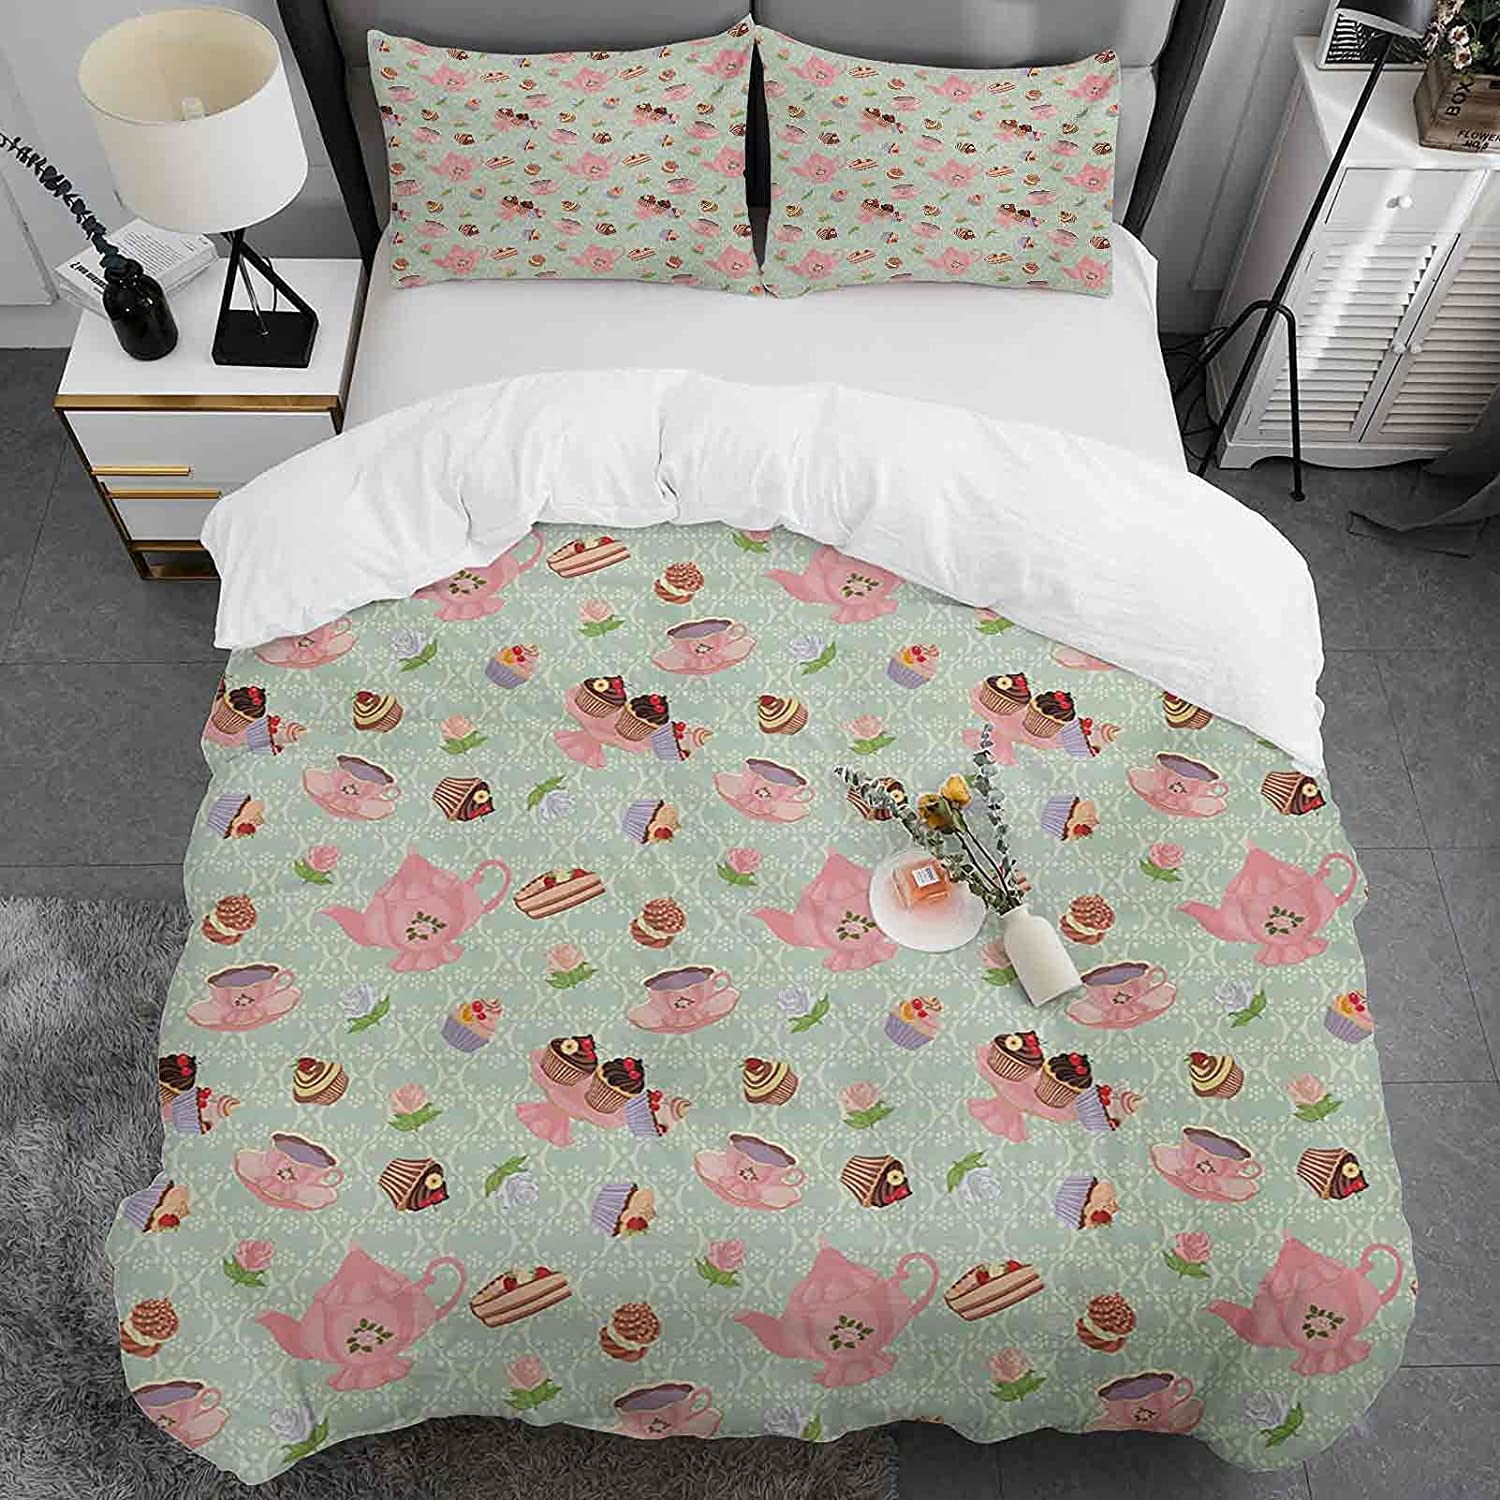 3 Piece Duvet Cover Queen Size Year-end gift Washed Microf Pattern Max 65% OFF 100% Retro